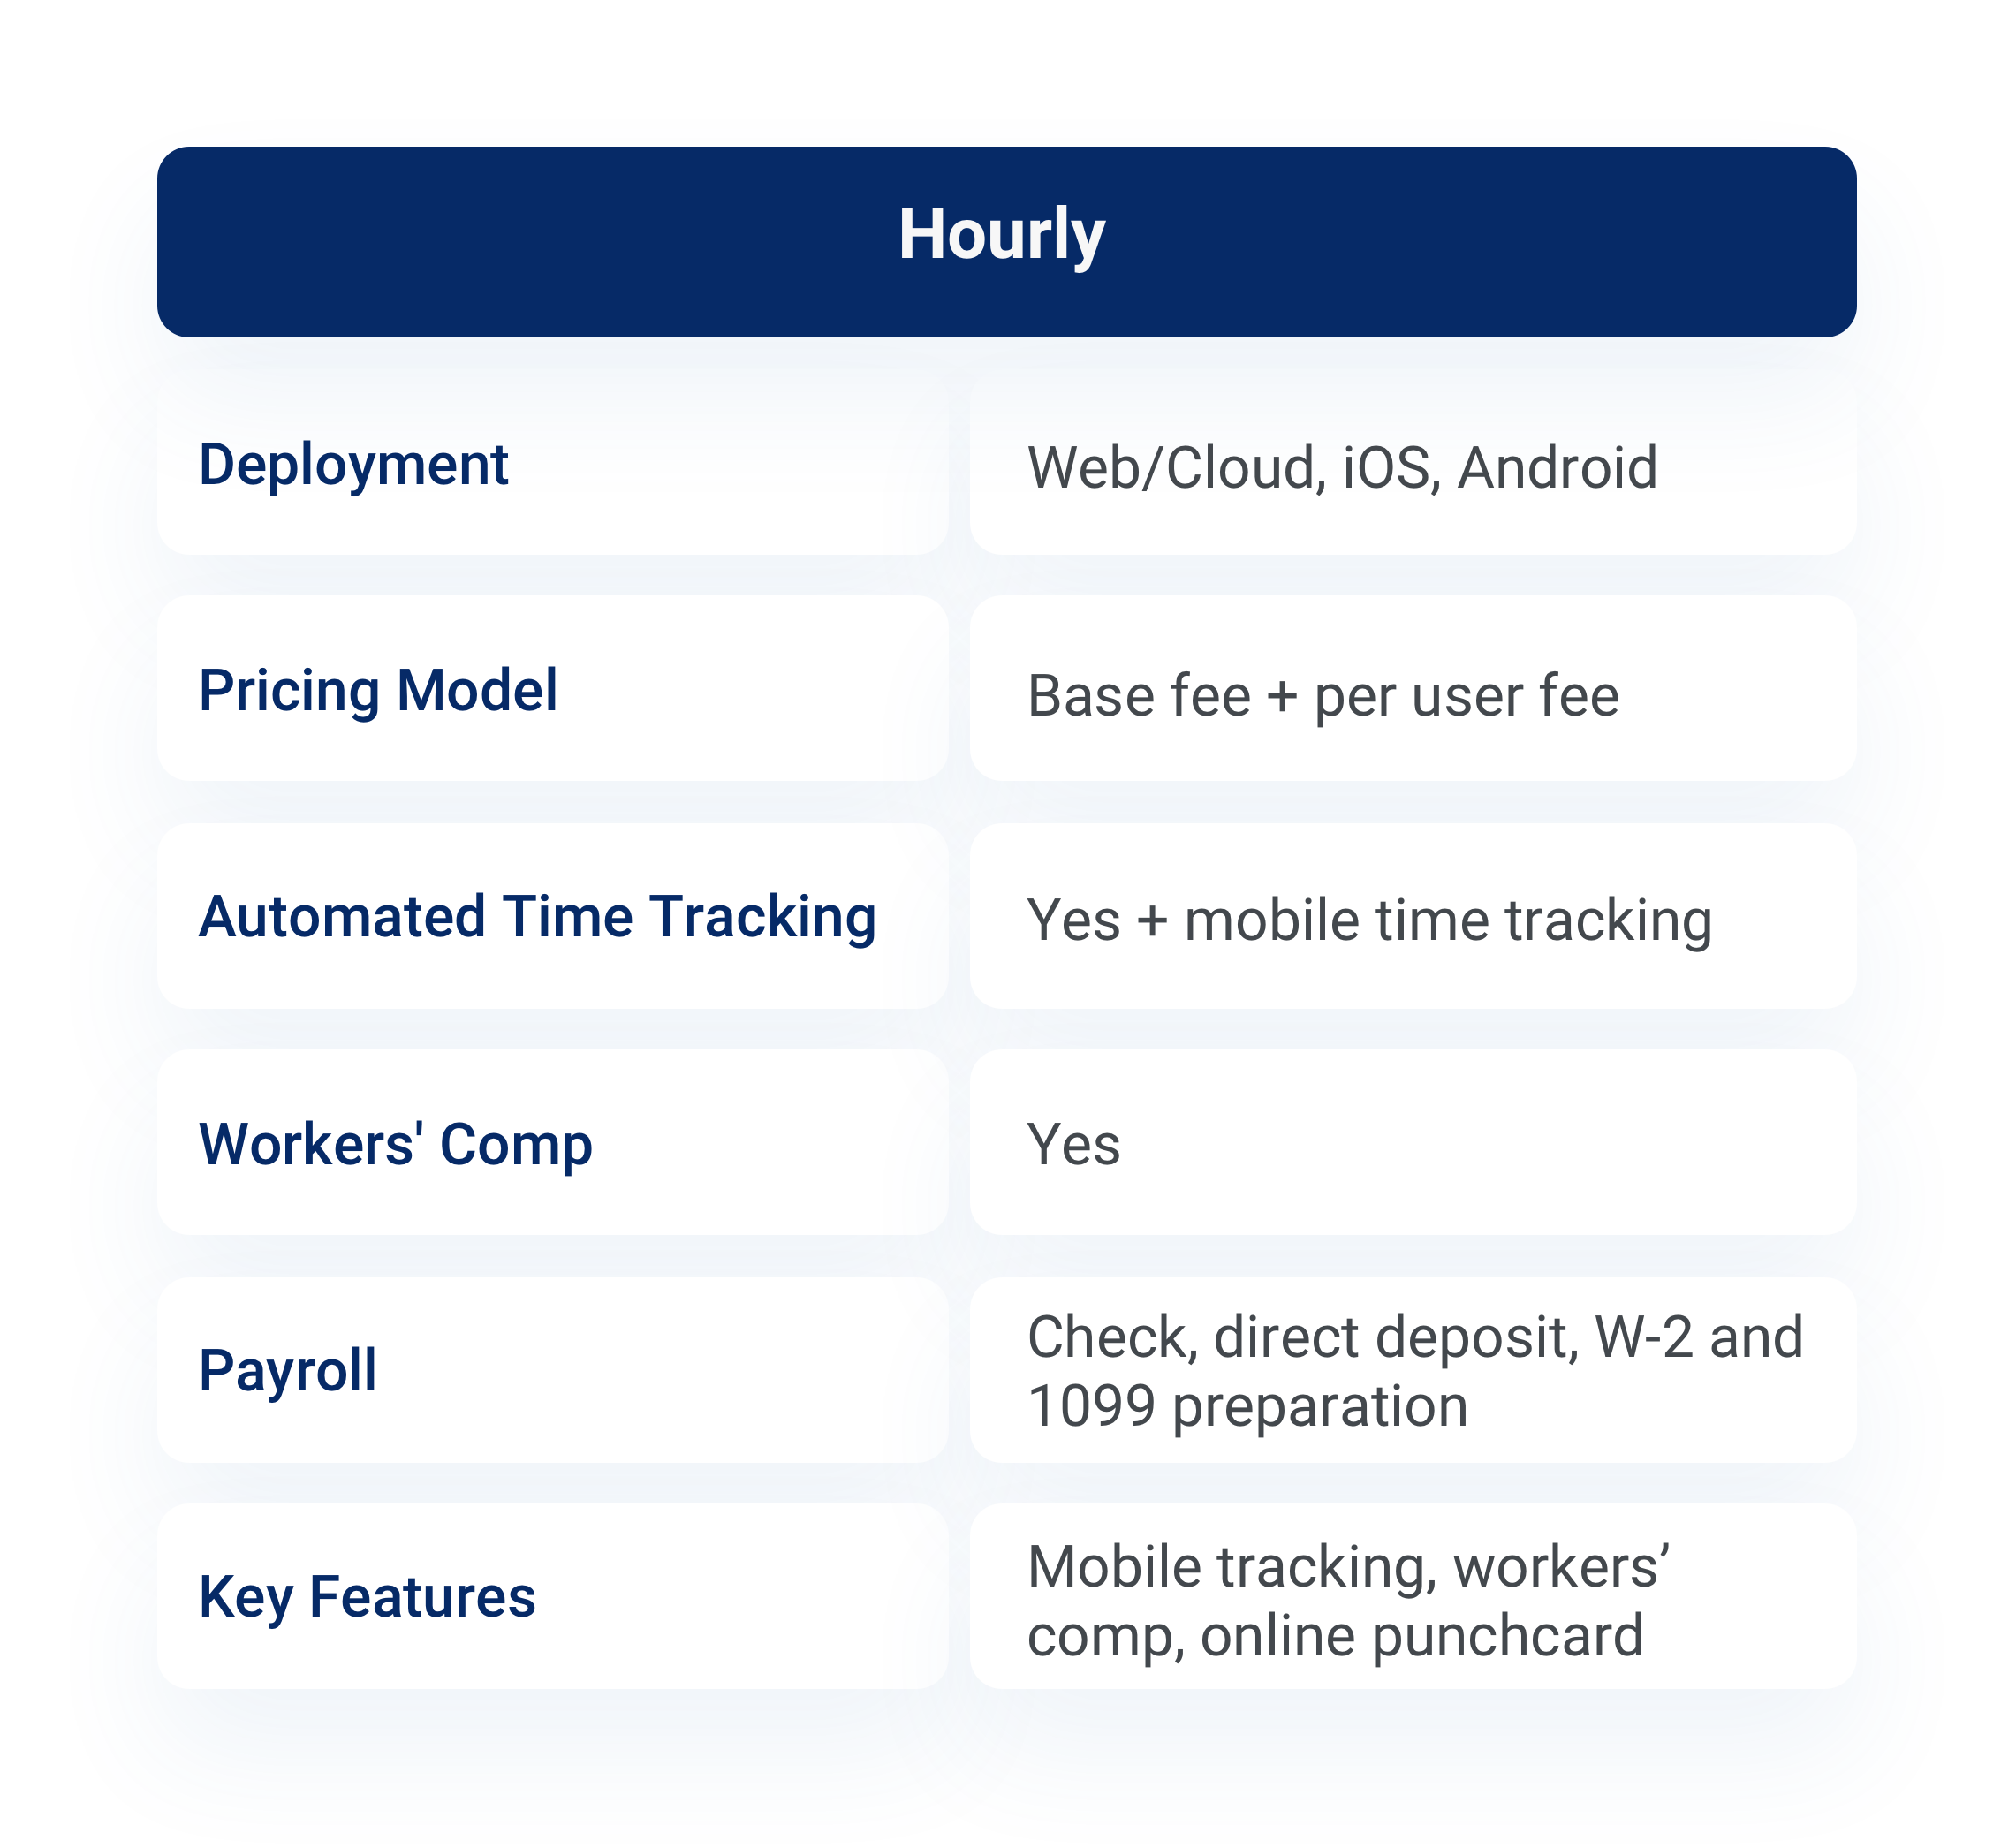 A table showing Hourly's time tracking features